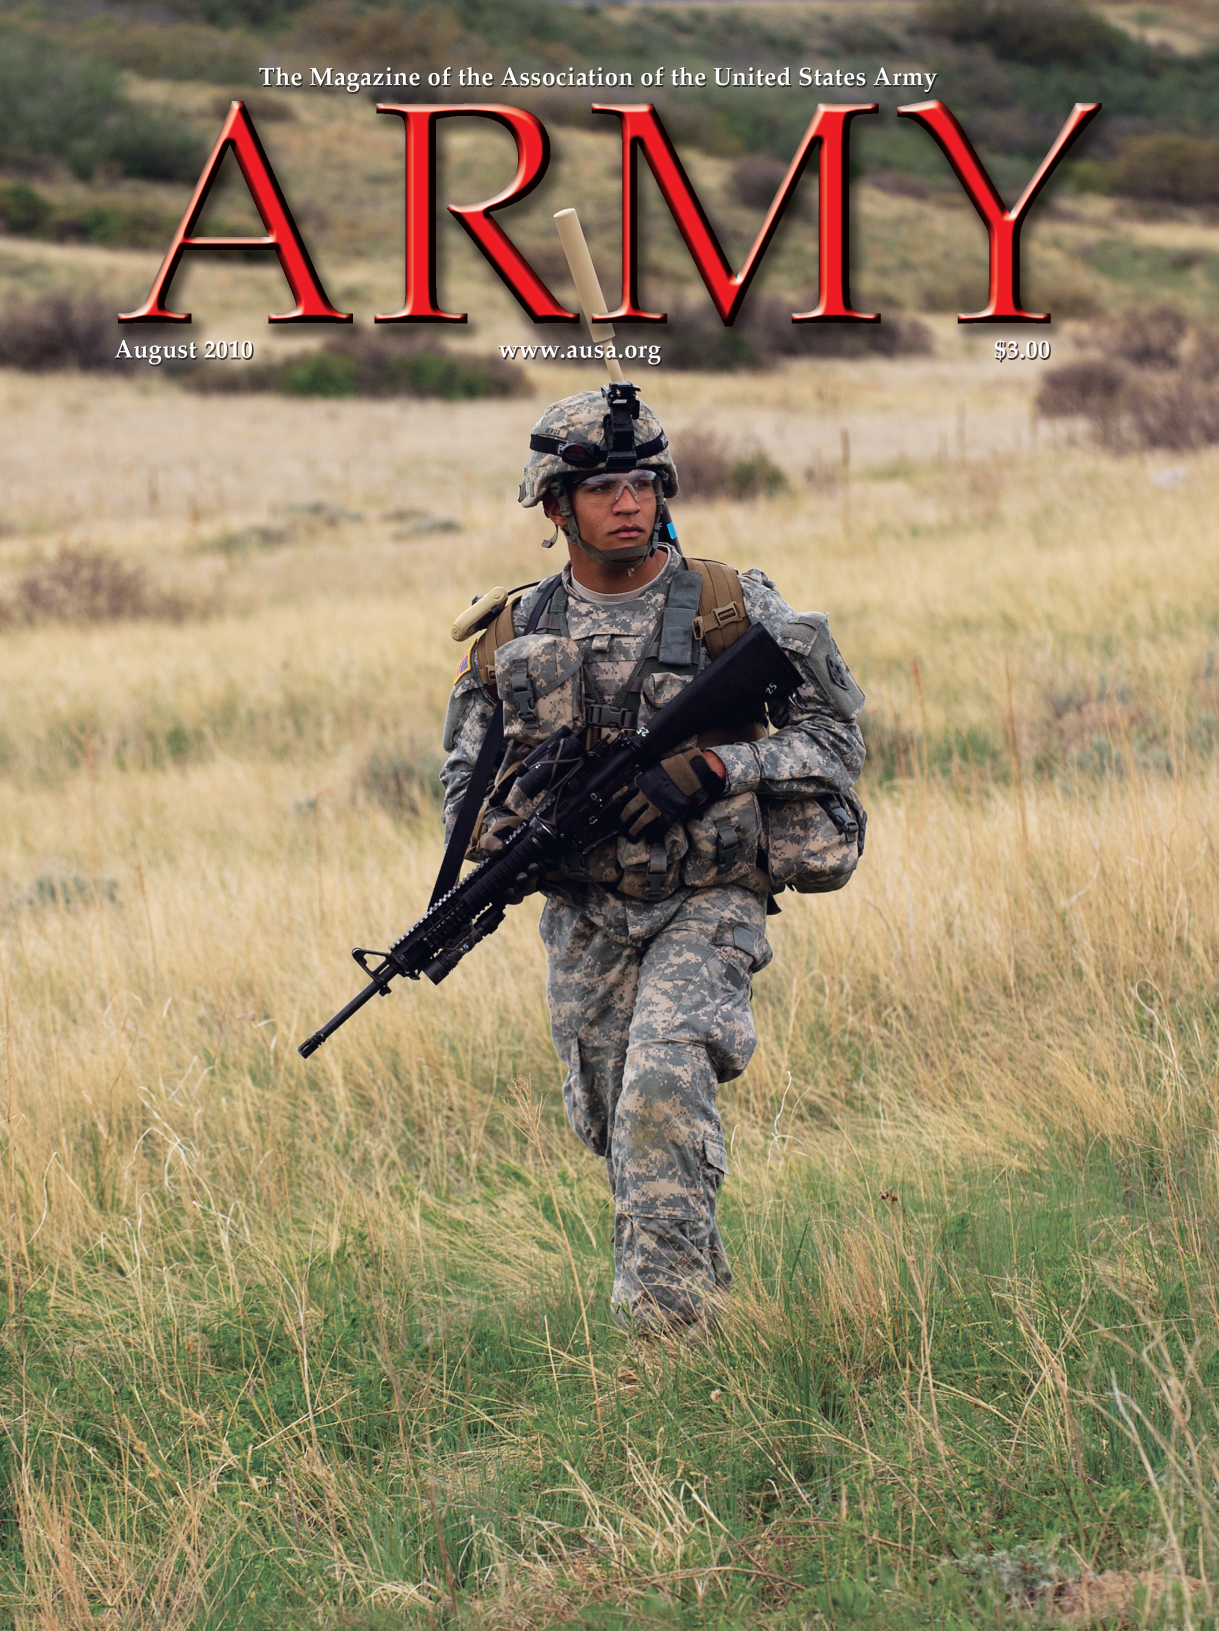 Army Magazine : August 2010 Volume 60, Issue 8 by French, Mary Blake